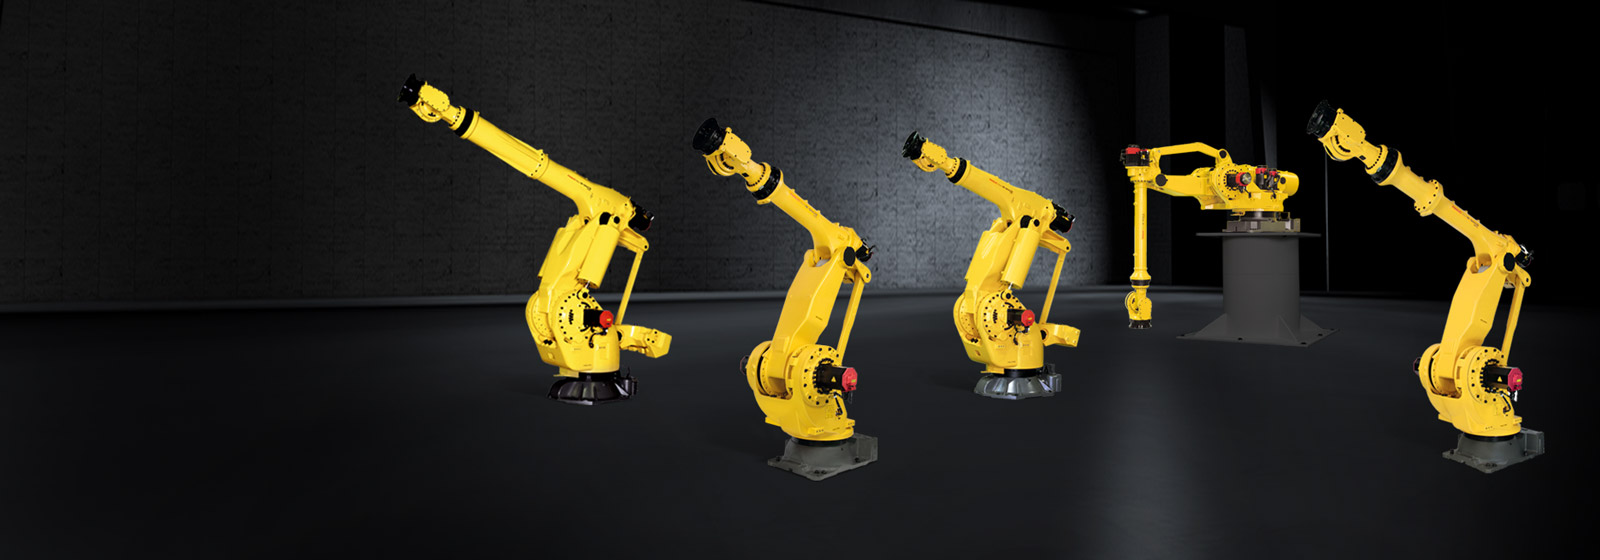 Robot range of M-900iA series